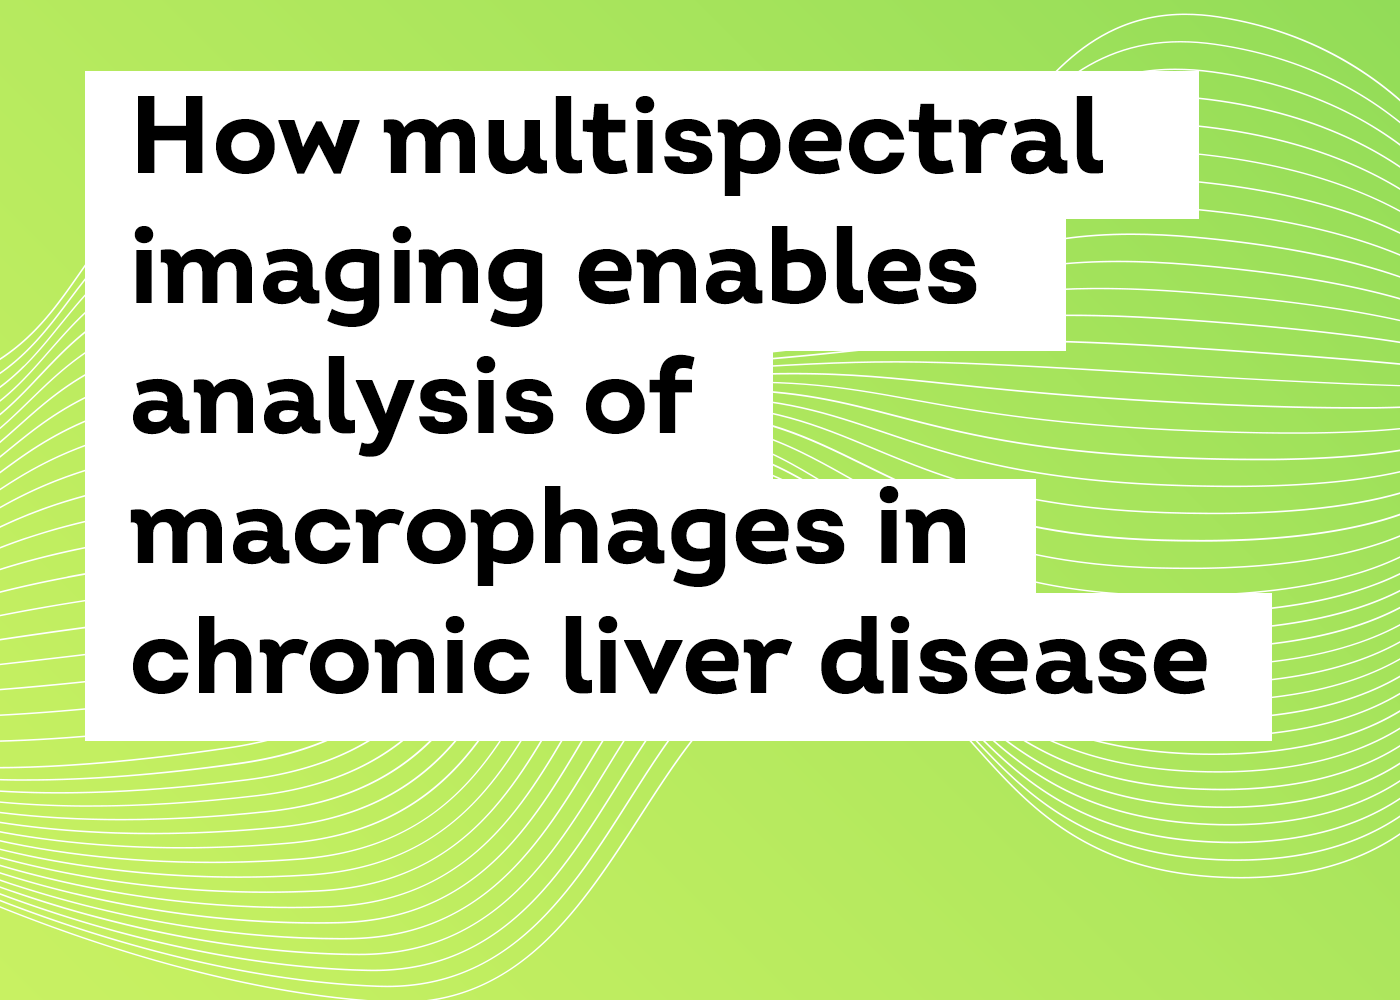 How multispectral imaging enables analysis of macrophages in chronic liver disease